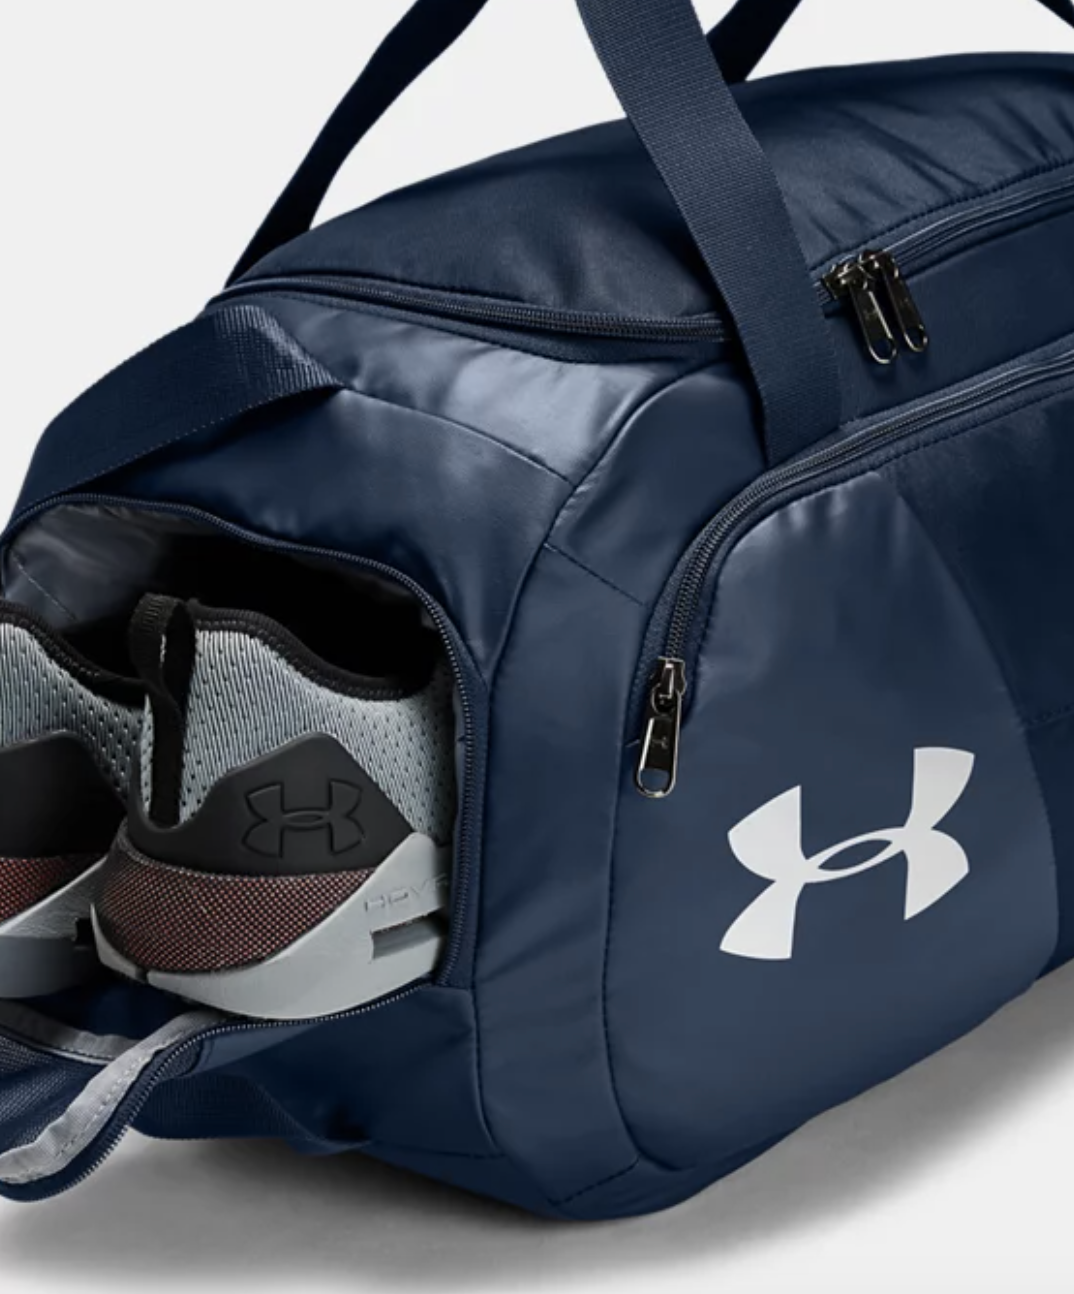 blue gym bag with sneaker side compartment and front pocket